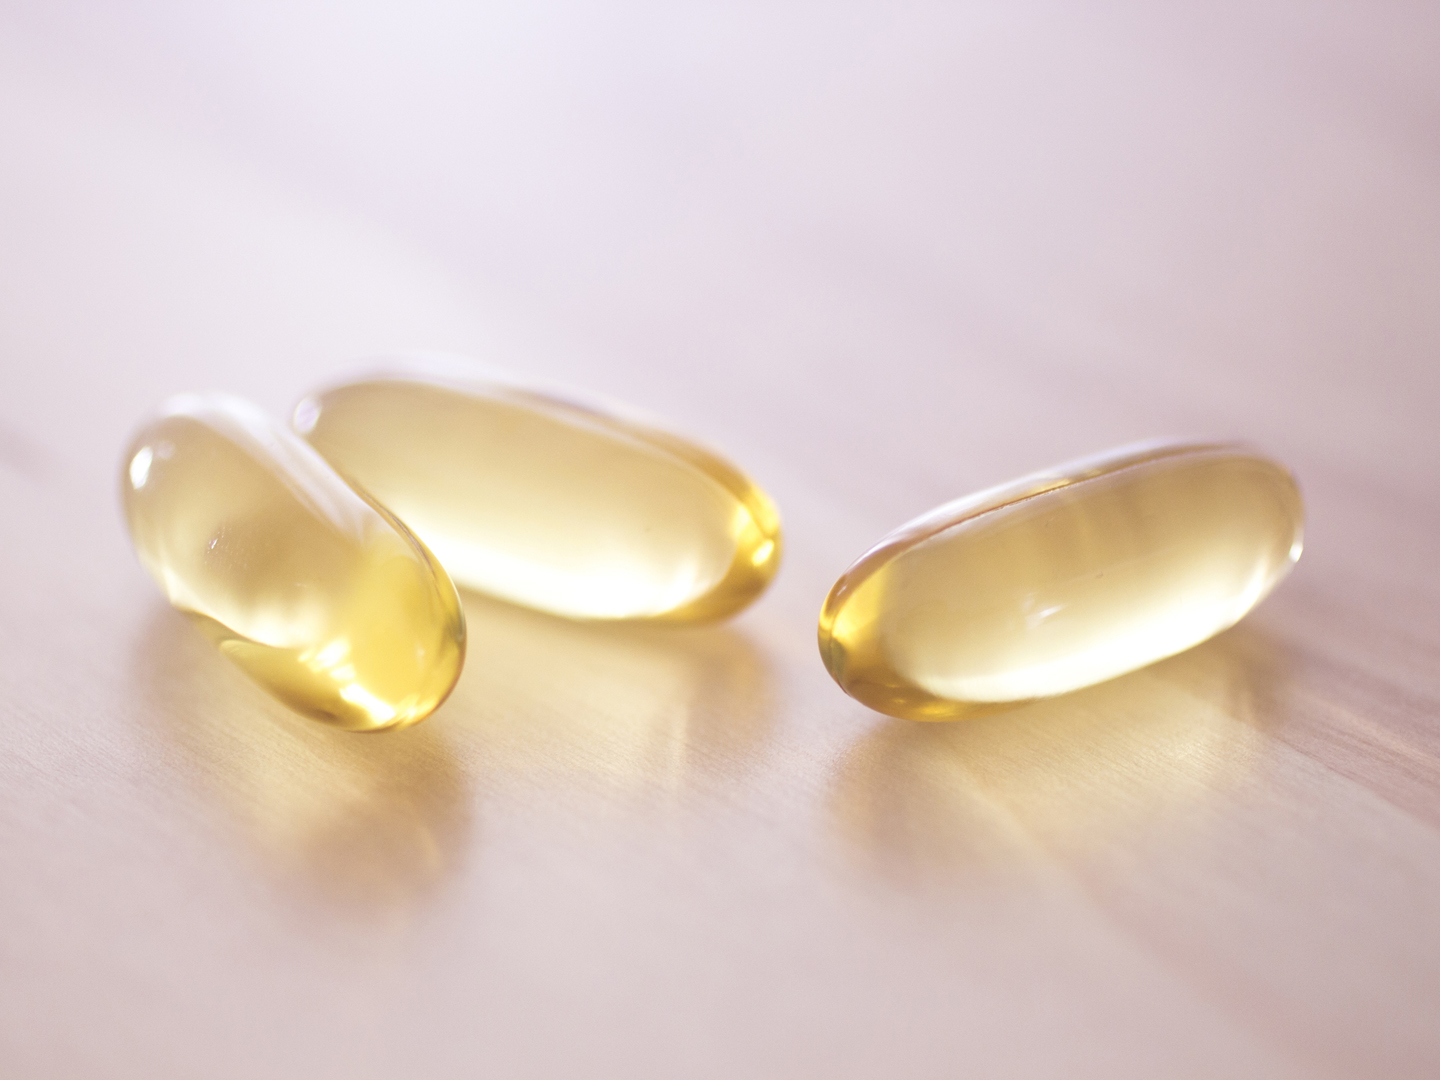 Omega 6 foods omega 6 benefits dr weil for Difference between cod liver oil and fish oil